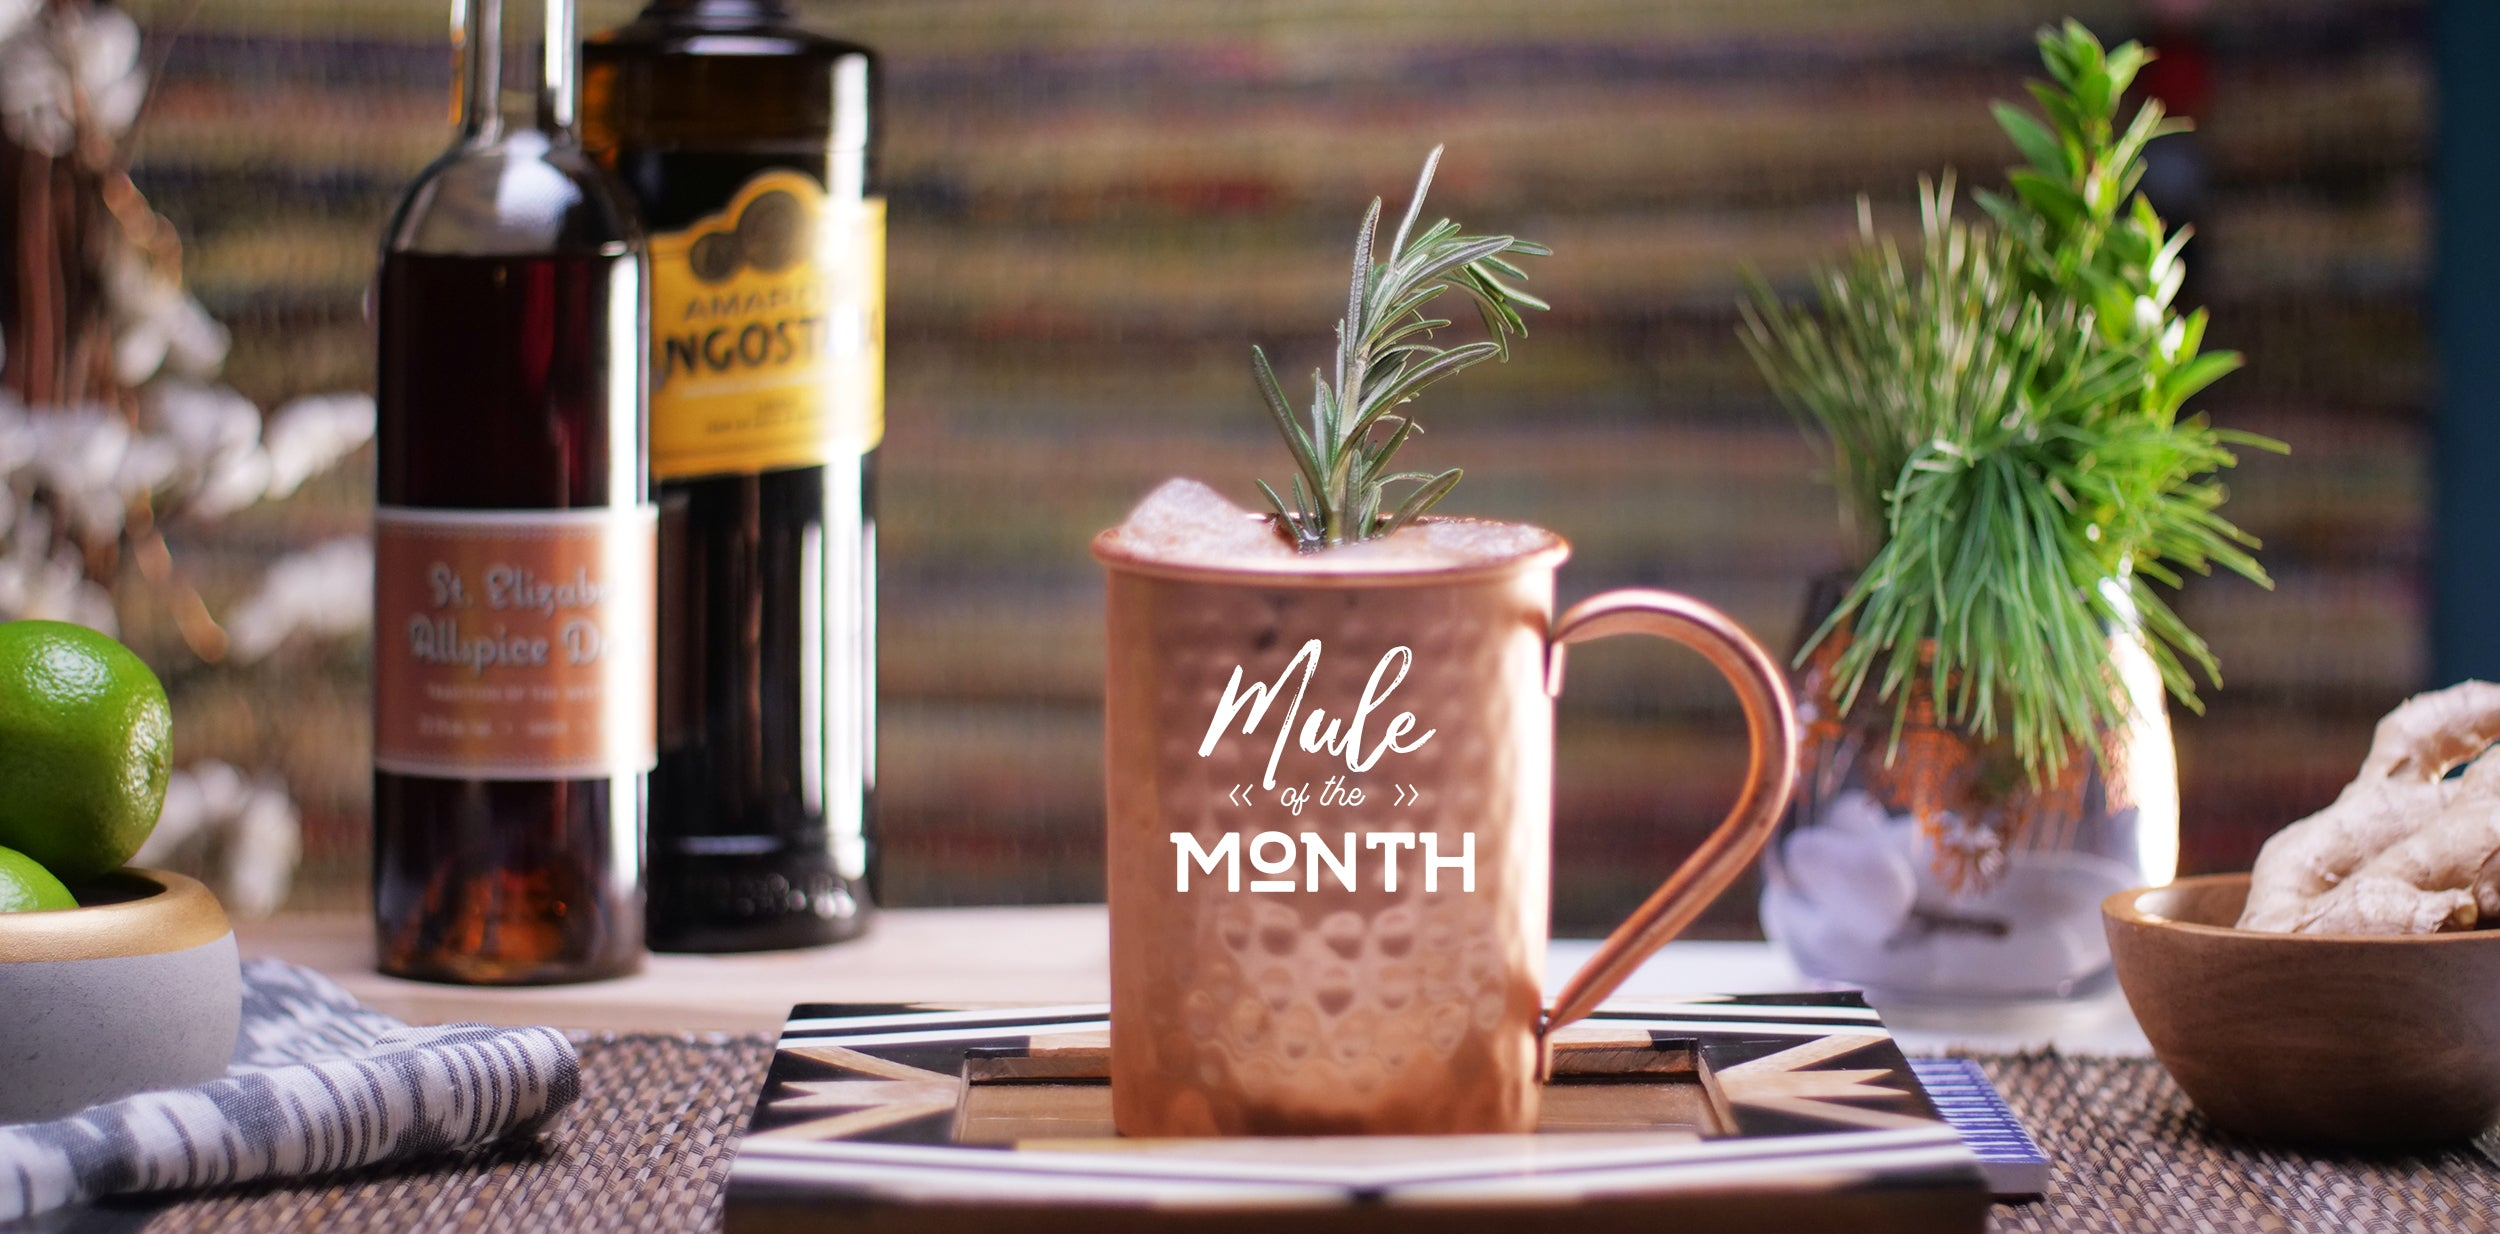 Mule of the month